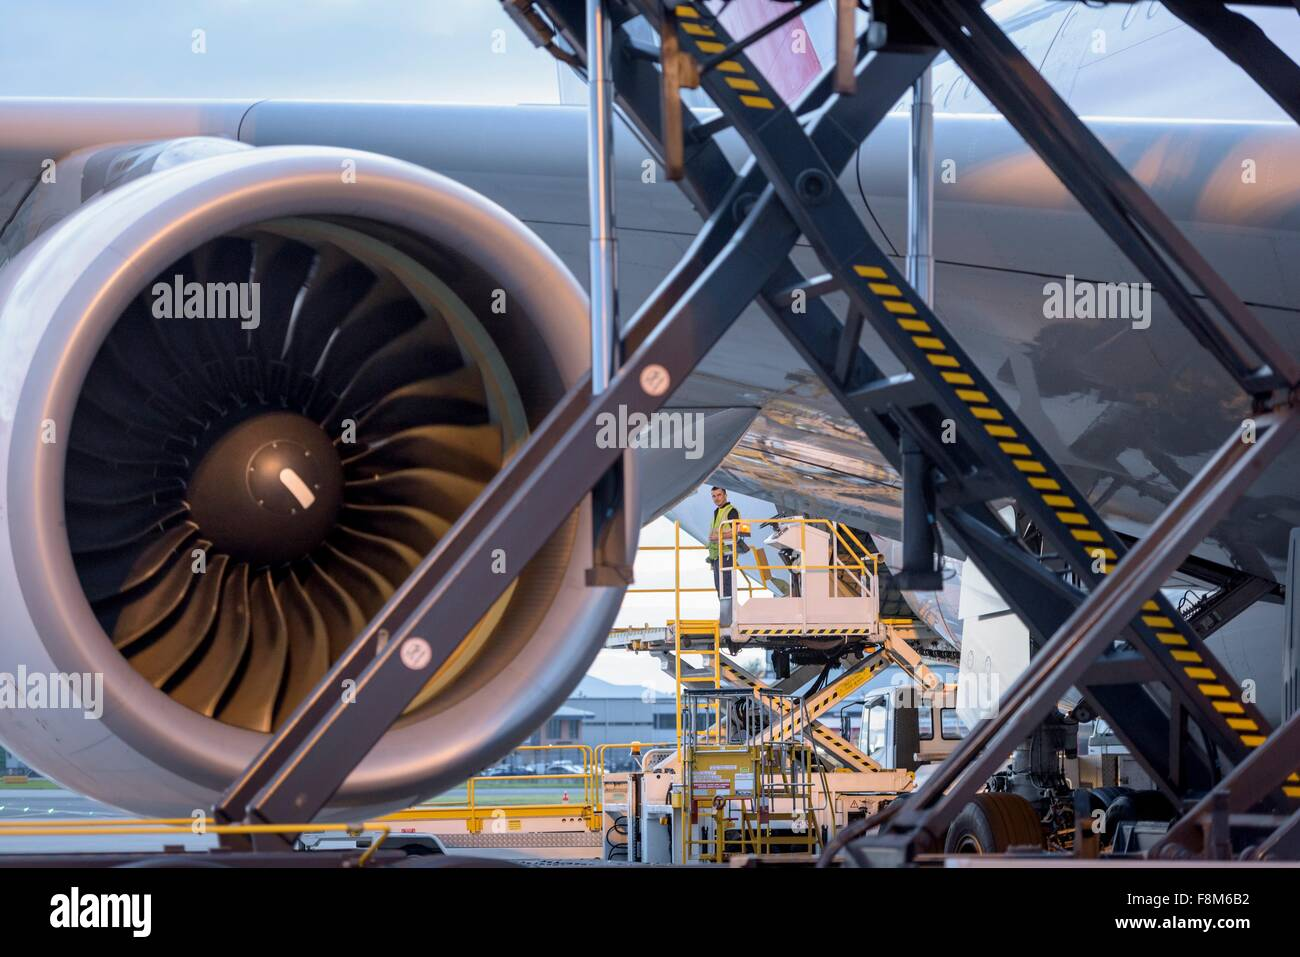 Detail of jet engine of A380 aircraft at airport - Stock Image